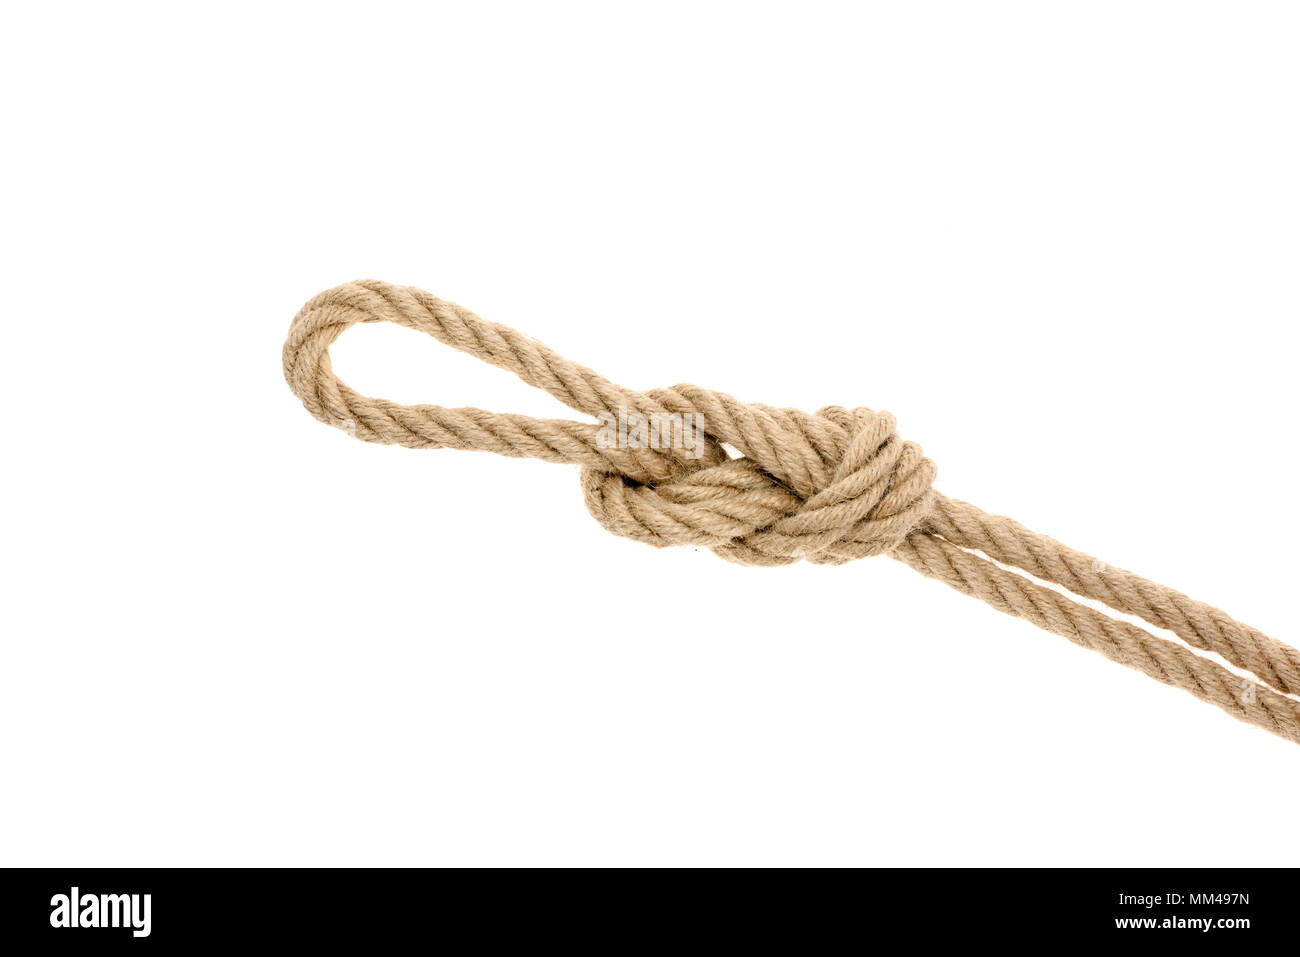 nautical rope with knot Stock Photo: 184491881 - Alamy